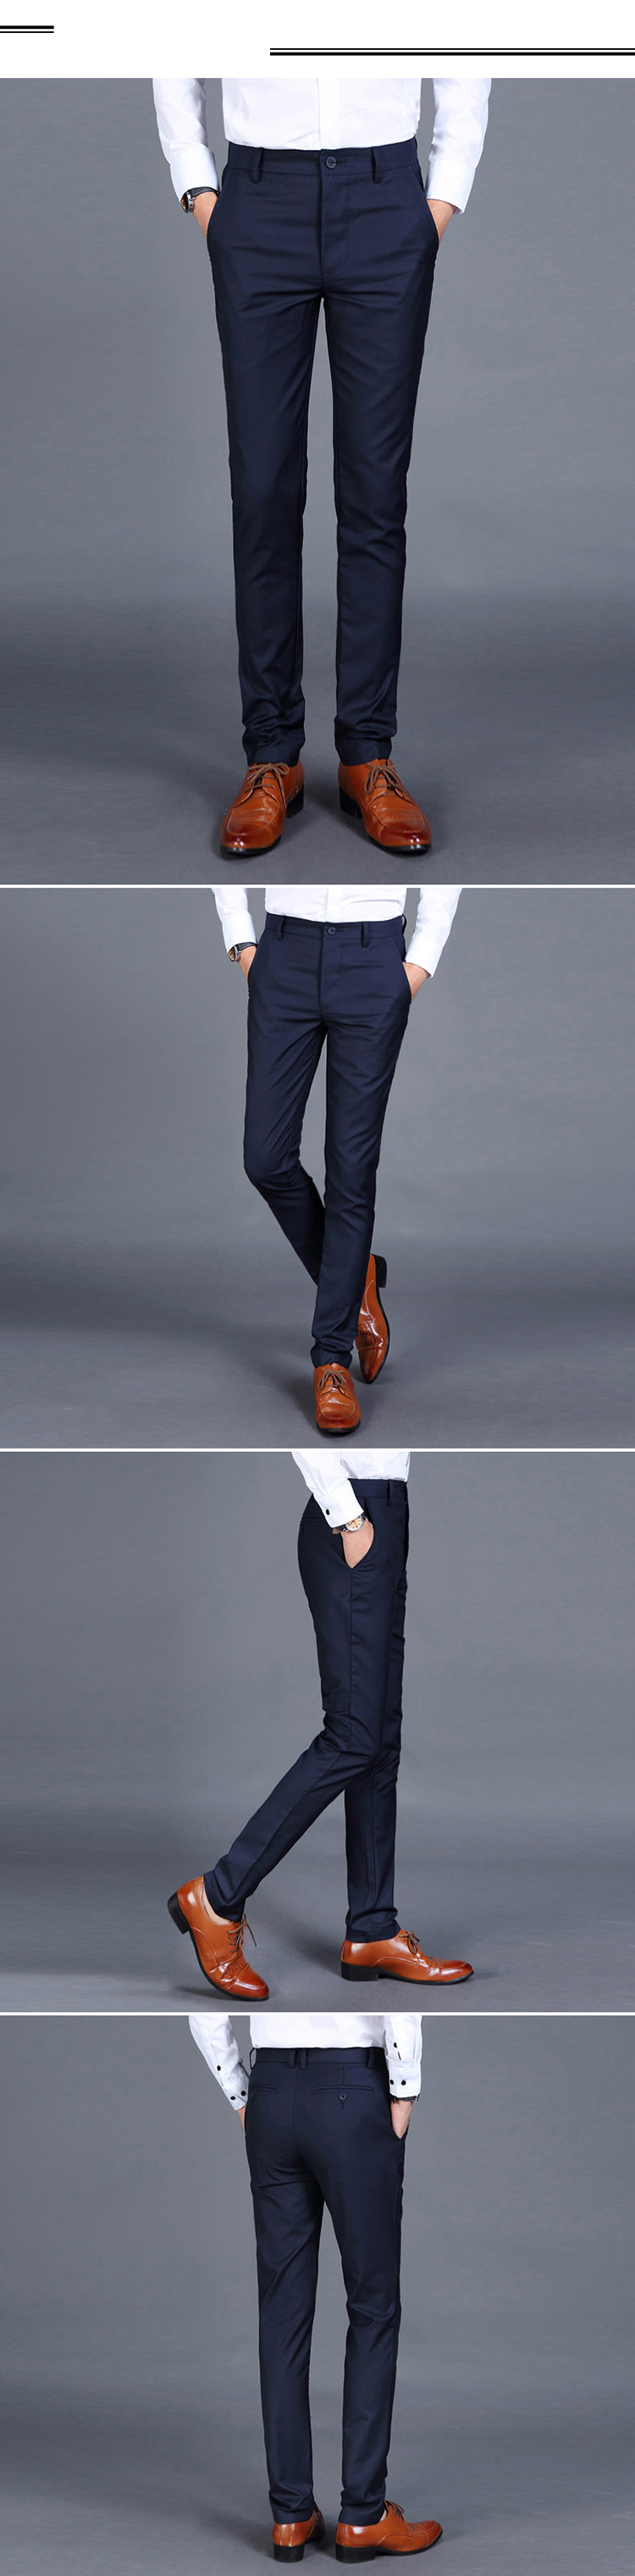 Hd4ab6e436e0341578333308c0d6c780aW HCXY 2019 Summer Men's Smart Casual Pants Men Slim Straight Suit Pants Male Trousers Thin Smooth fabric Solid classic trousers